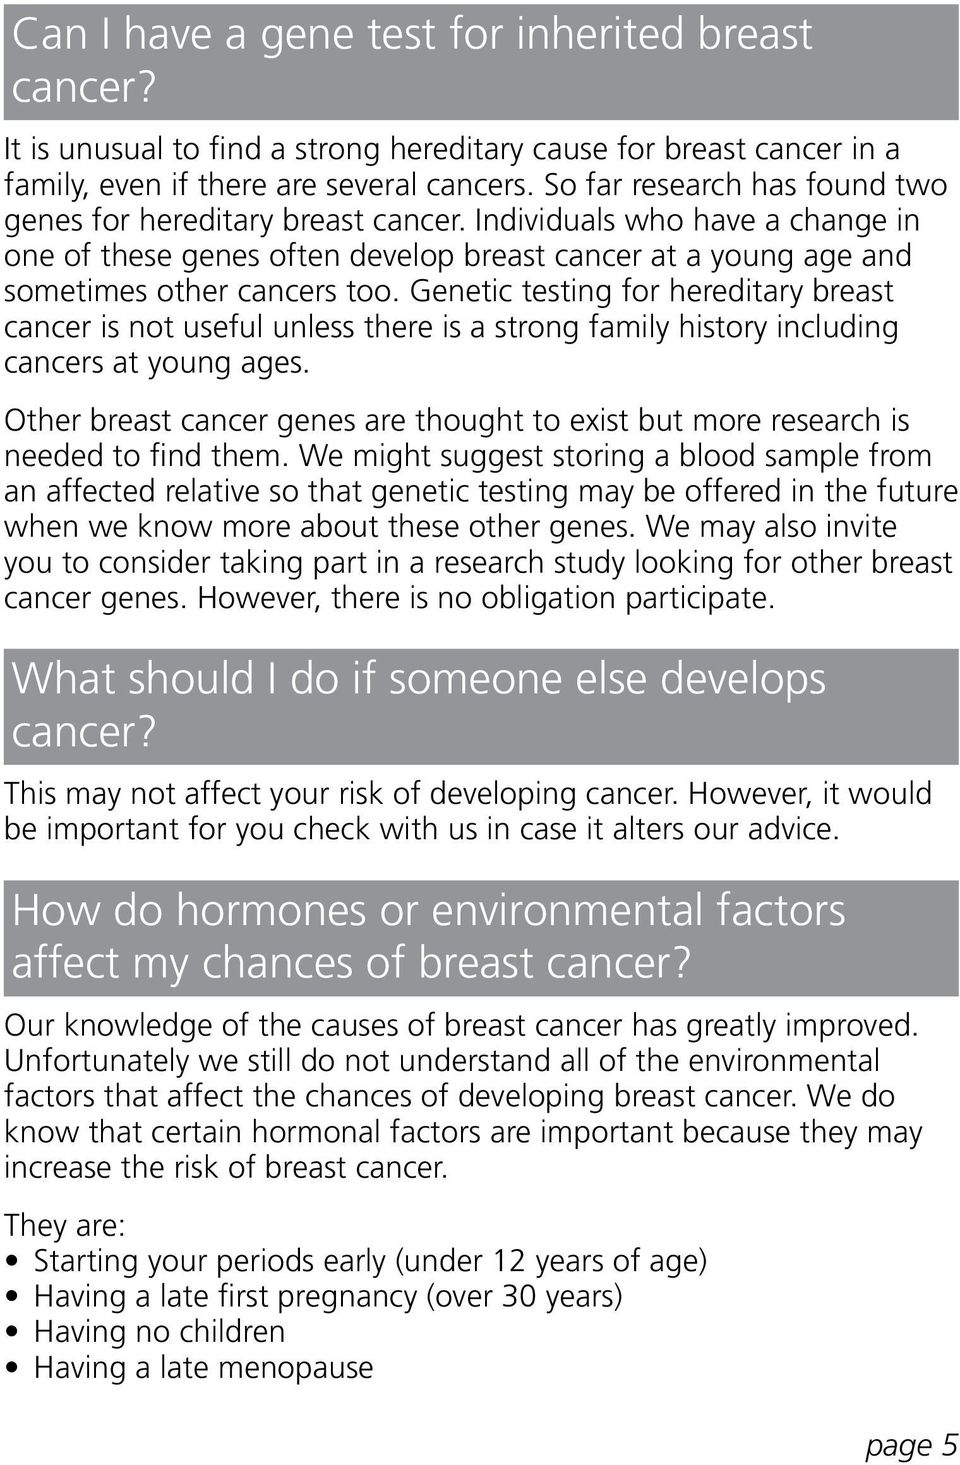 Genetic testing for hereditary breast cancer is not useful unless there is a strong family history including cancers at young ages.